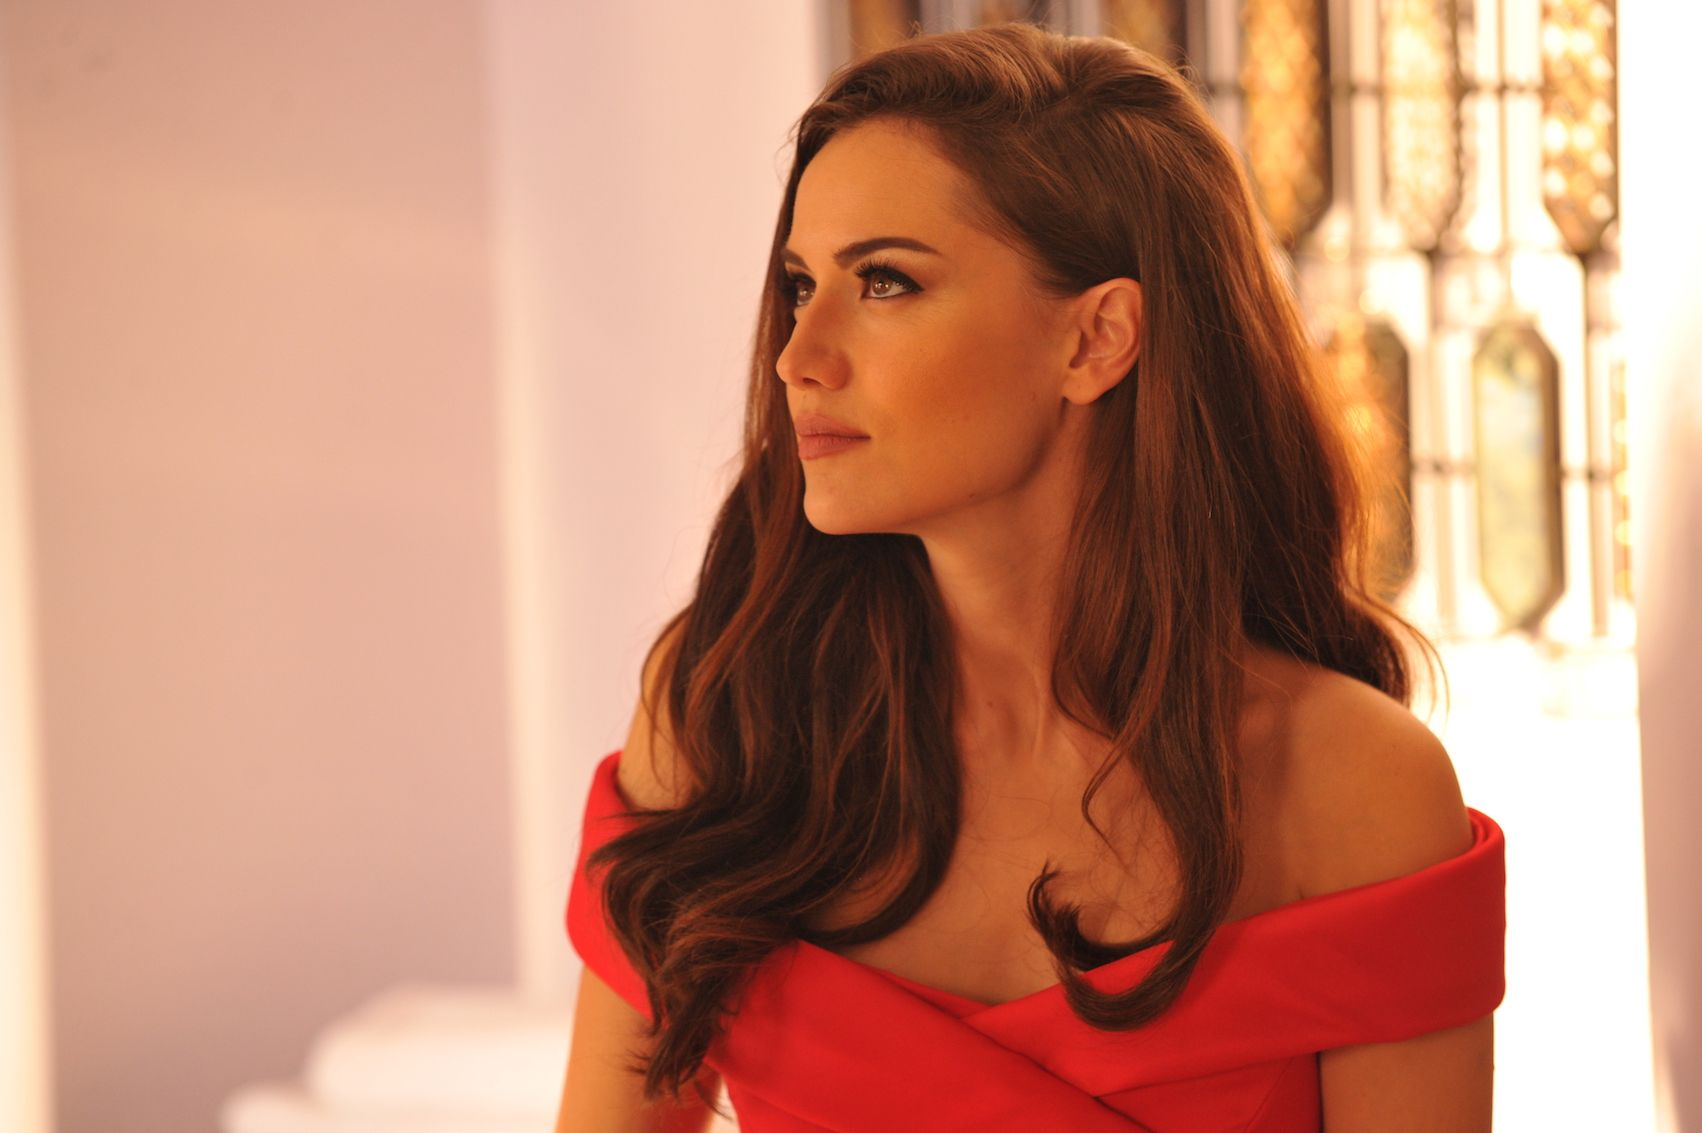 Beautiful Fahriye Evcen Is One Of The Most Popular Actresses Of